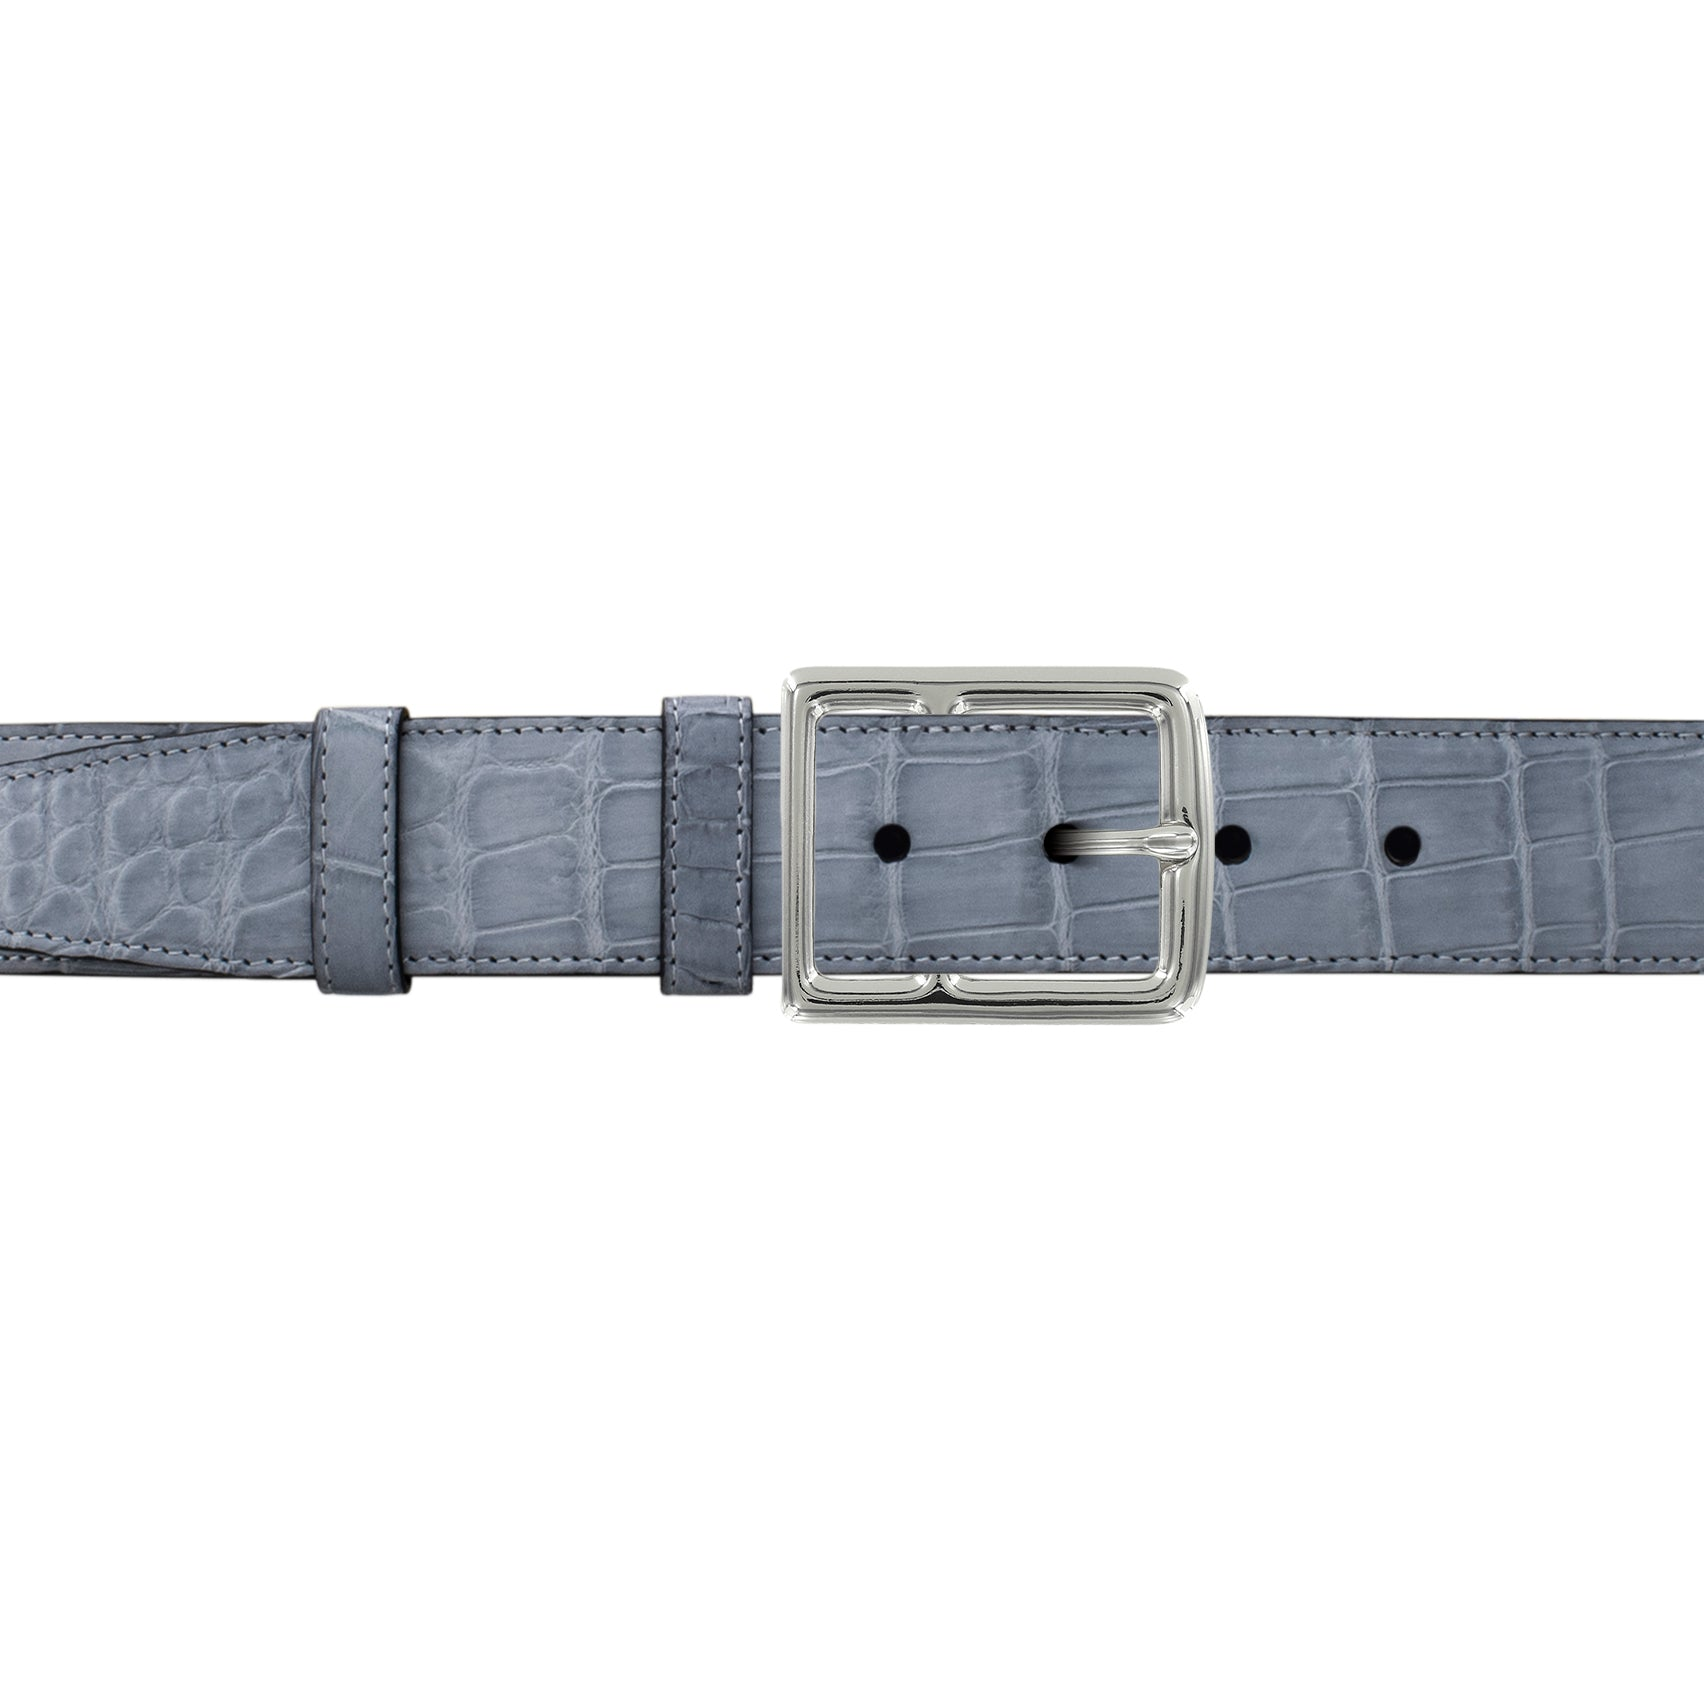 "1 1/2"" Slate Seasonal Belt with Crawford Casual Buckle in Polished Nickel"